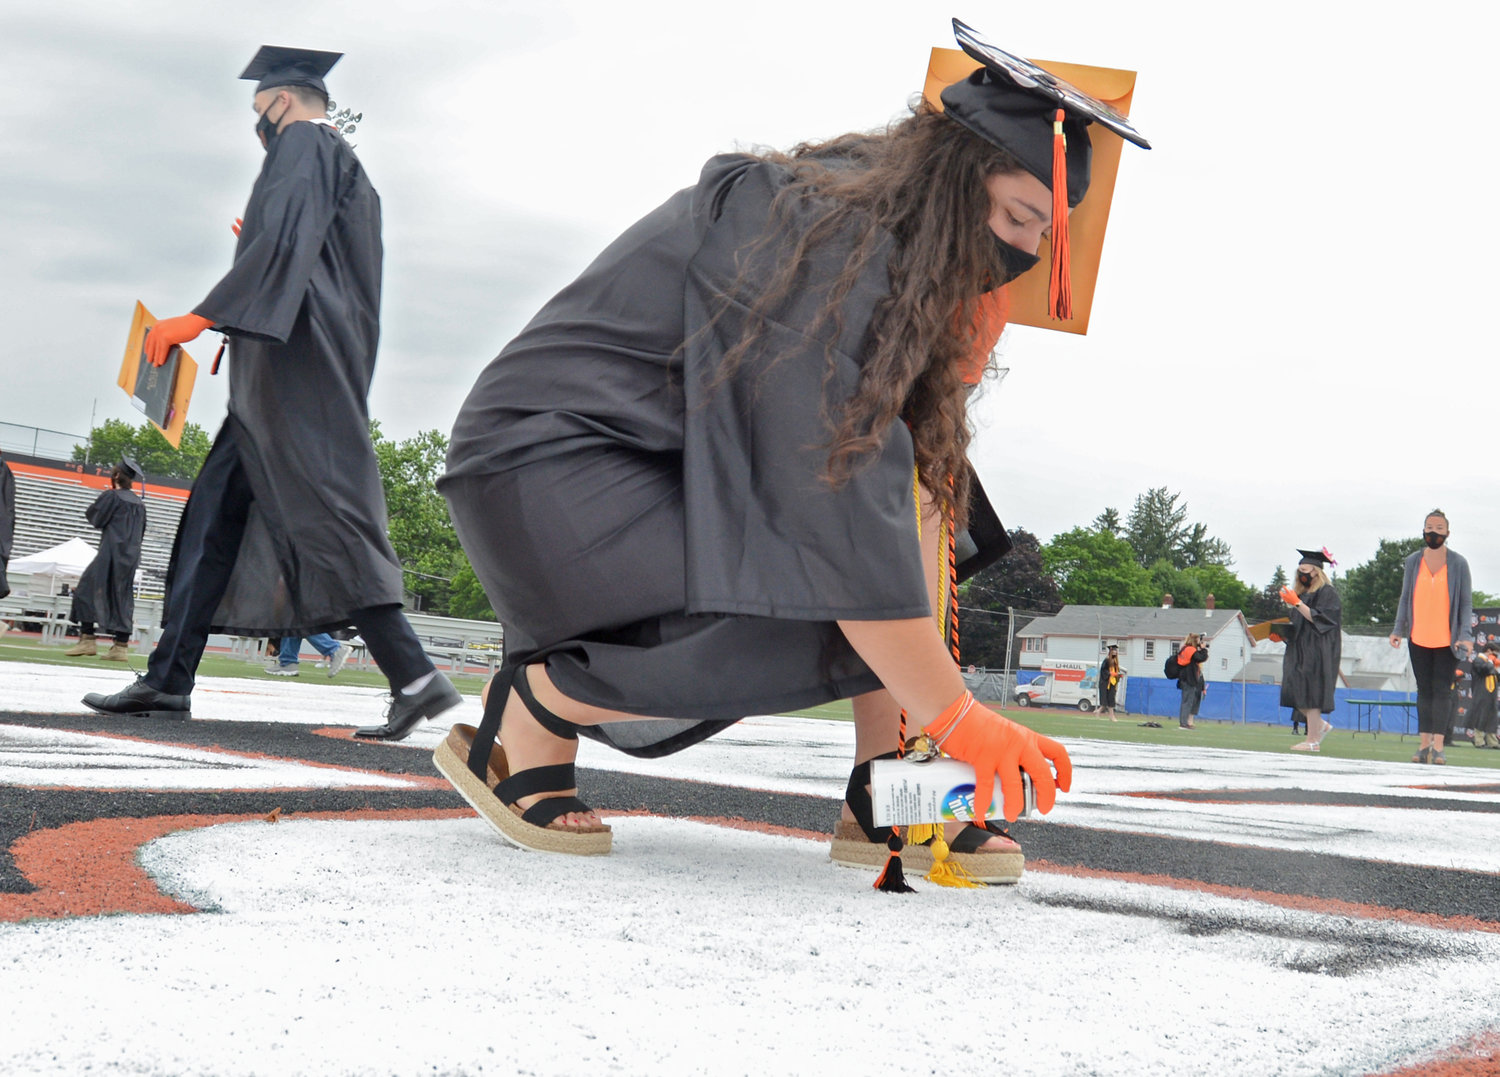 LEAVING HER MARK — Elana Calicchia spray paints her name into the turf at RFA after getting her diploma on Saturday.